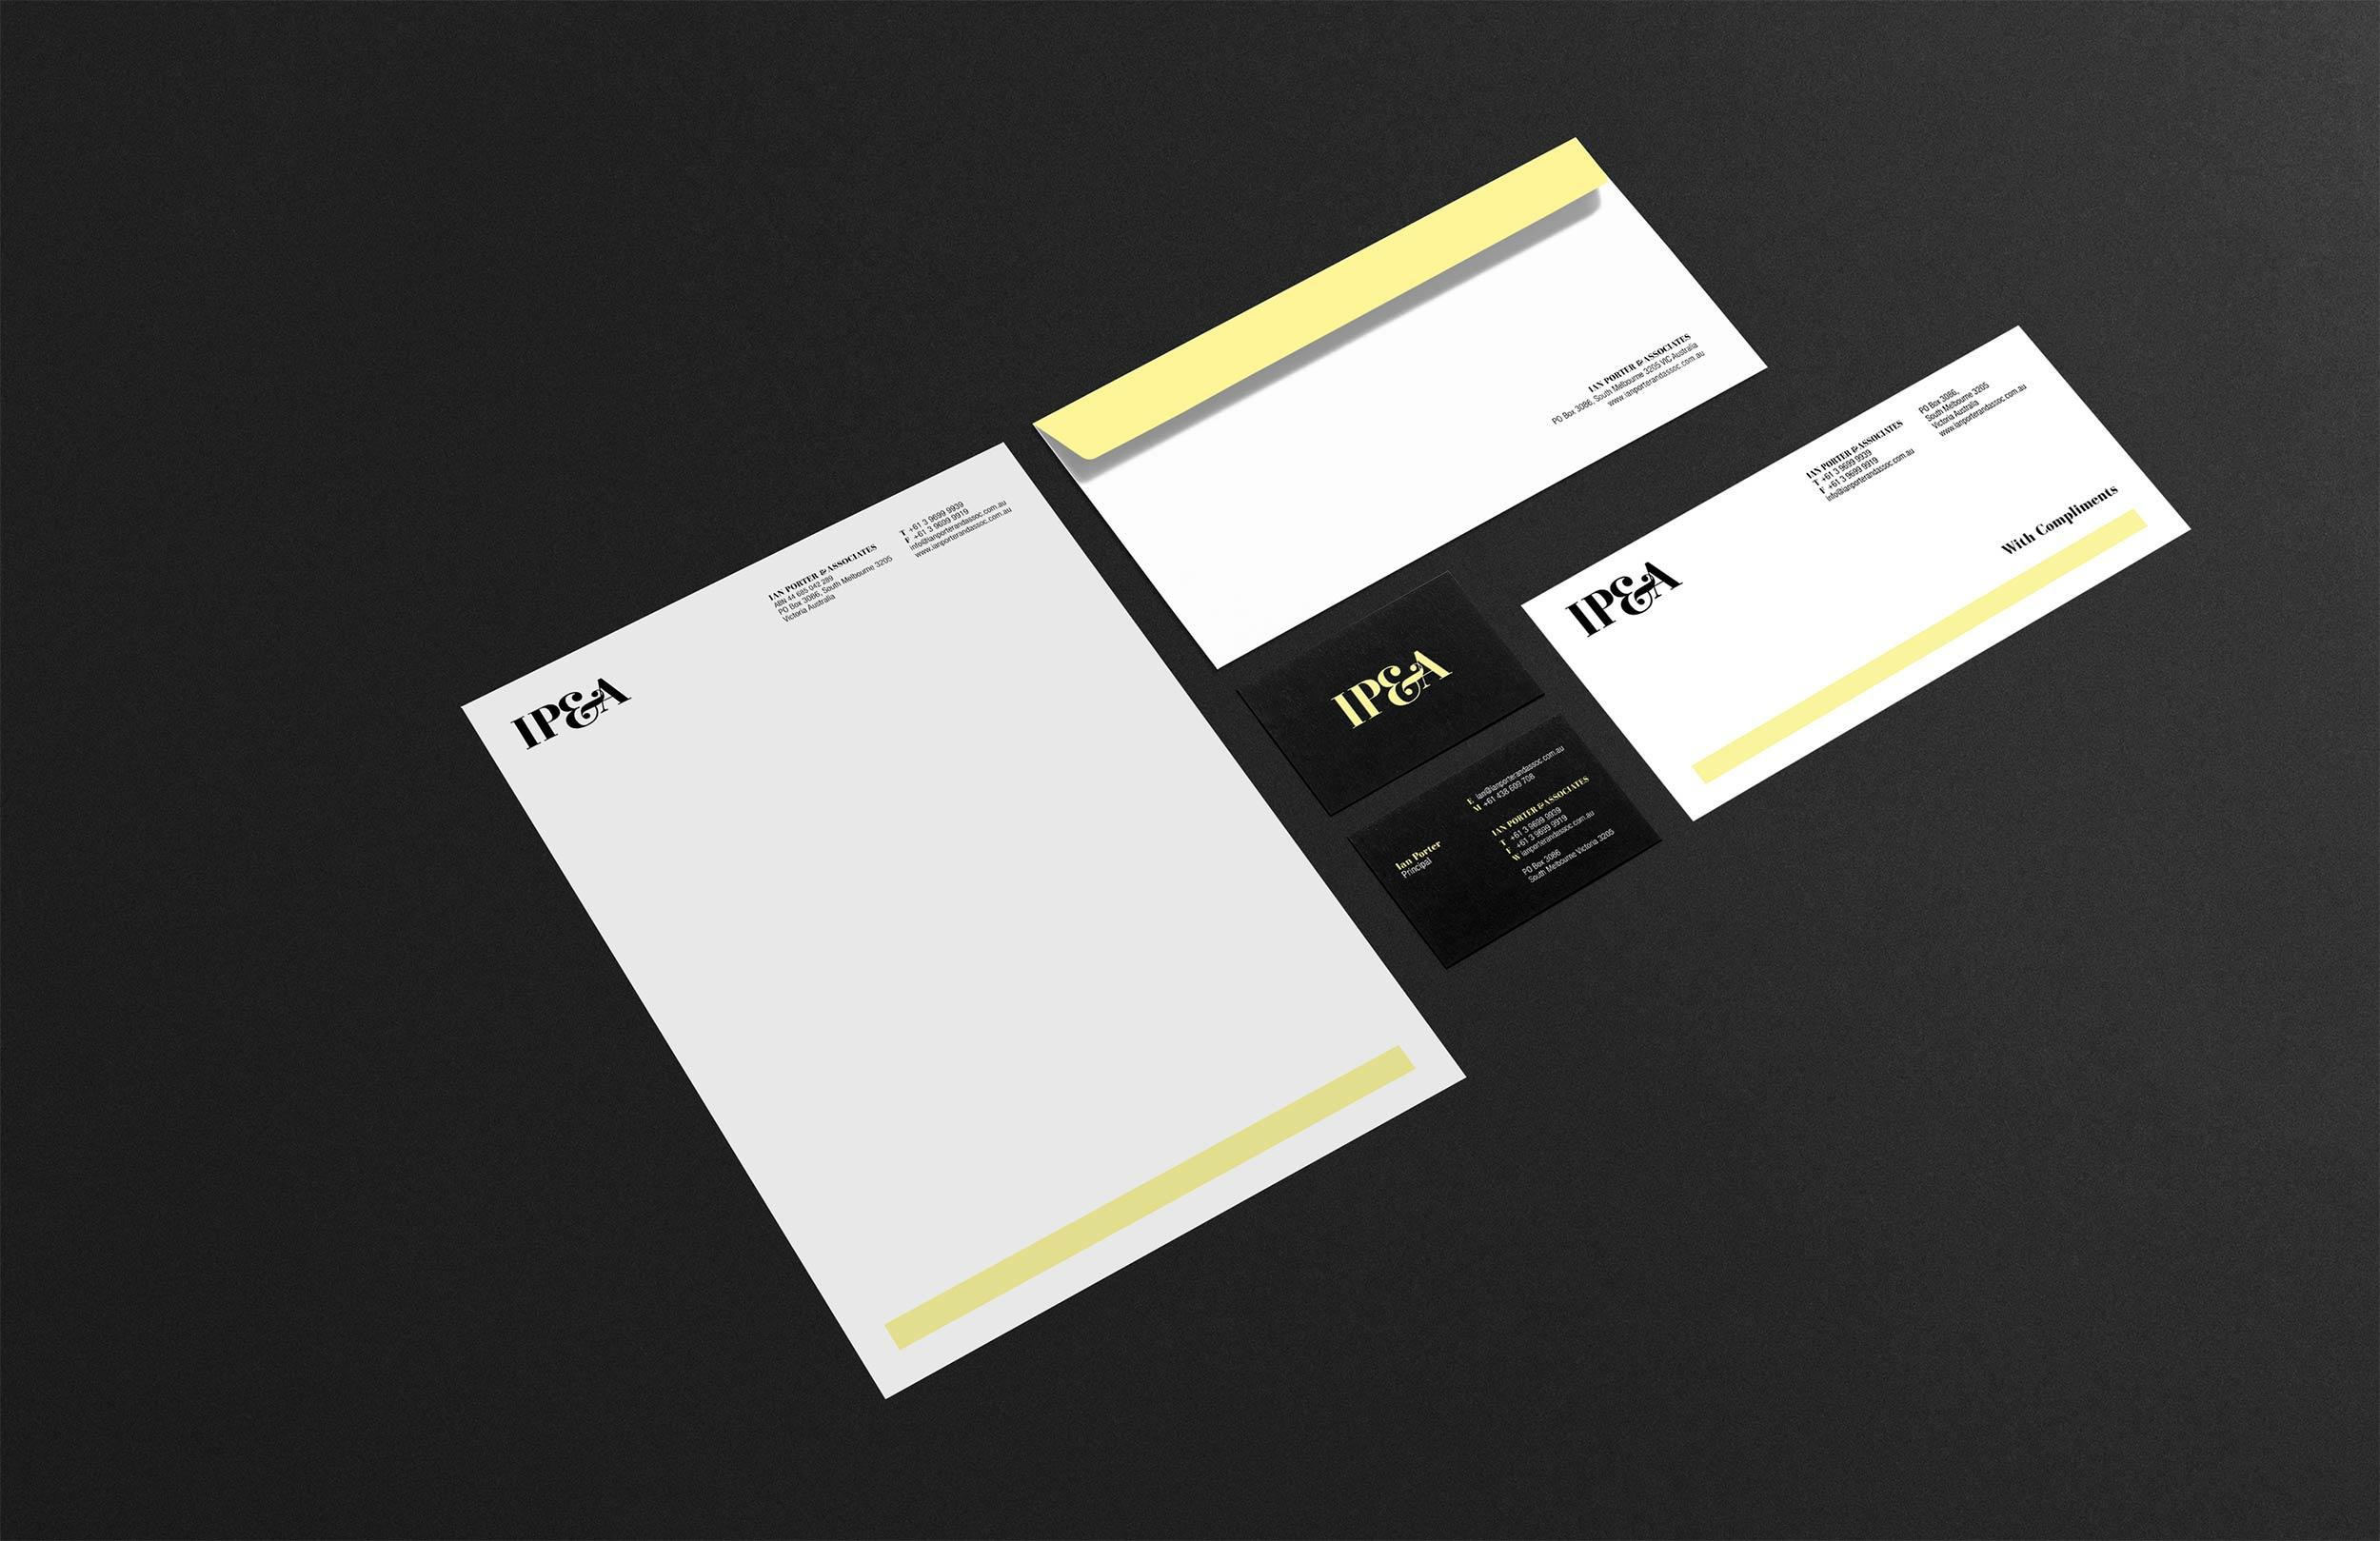 ipa-law-firm-stationery